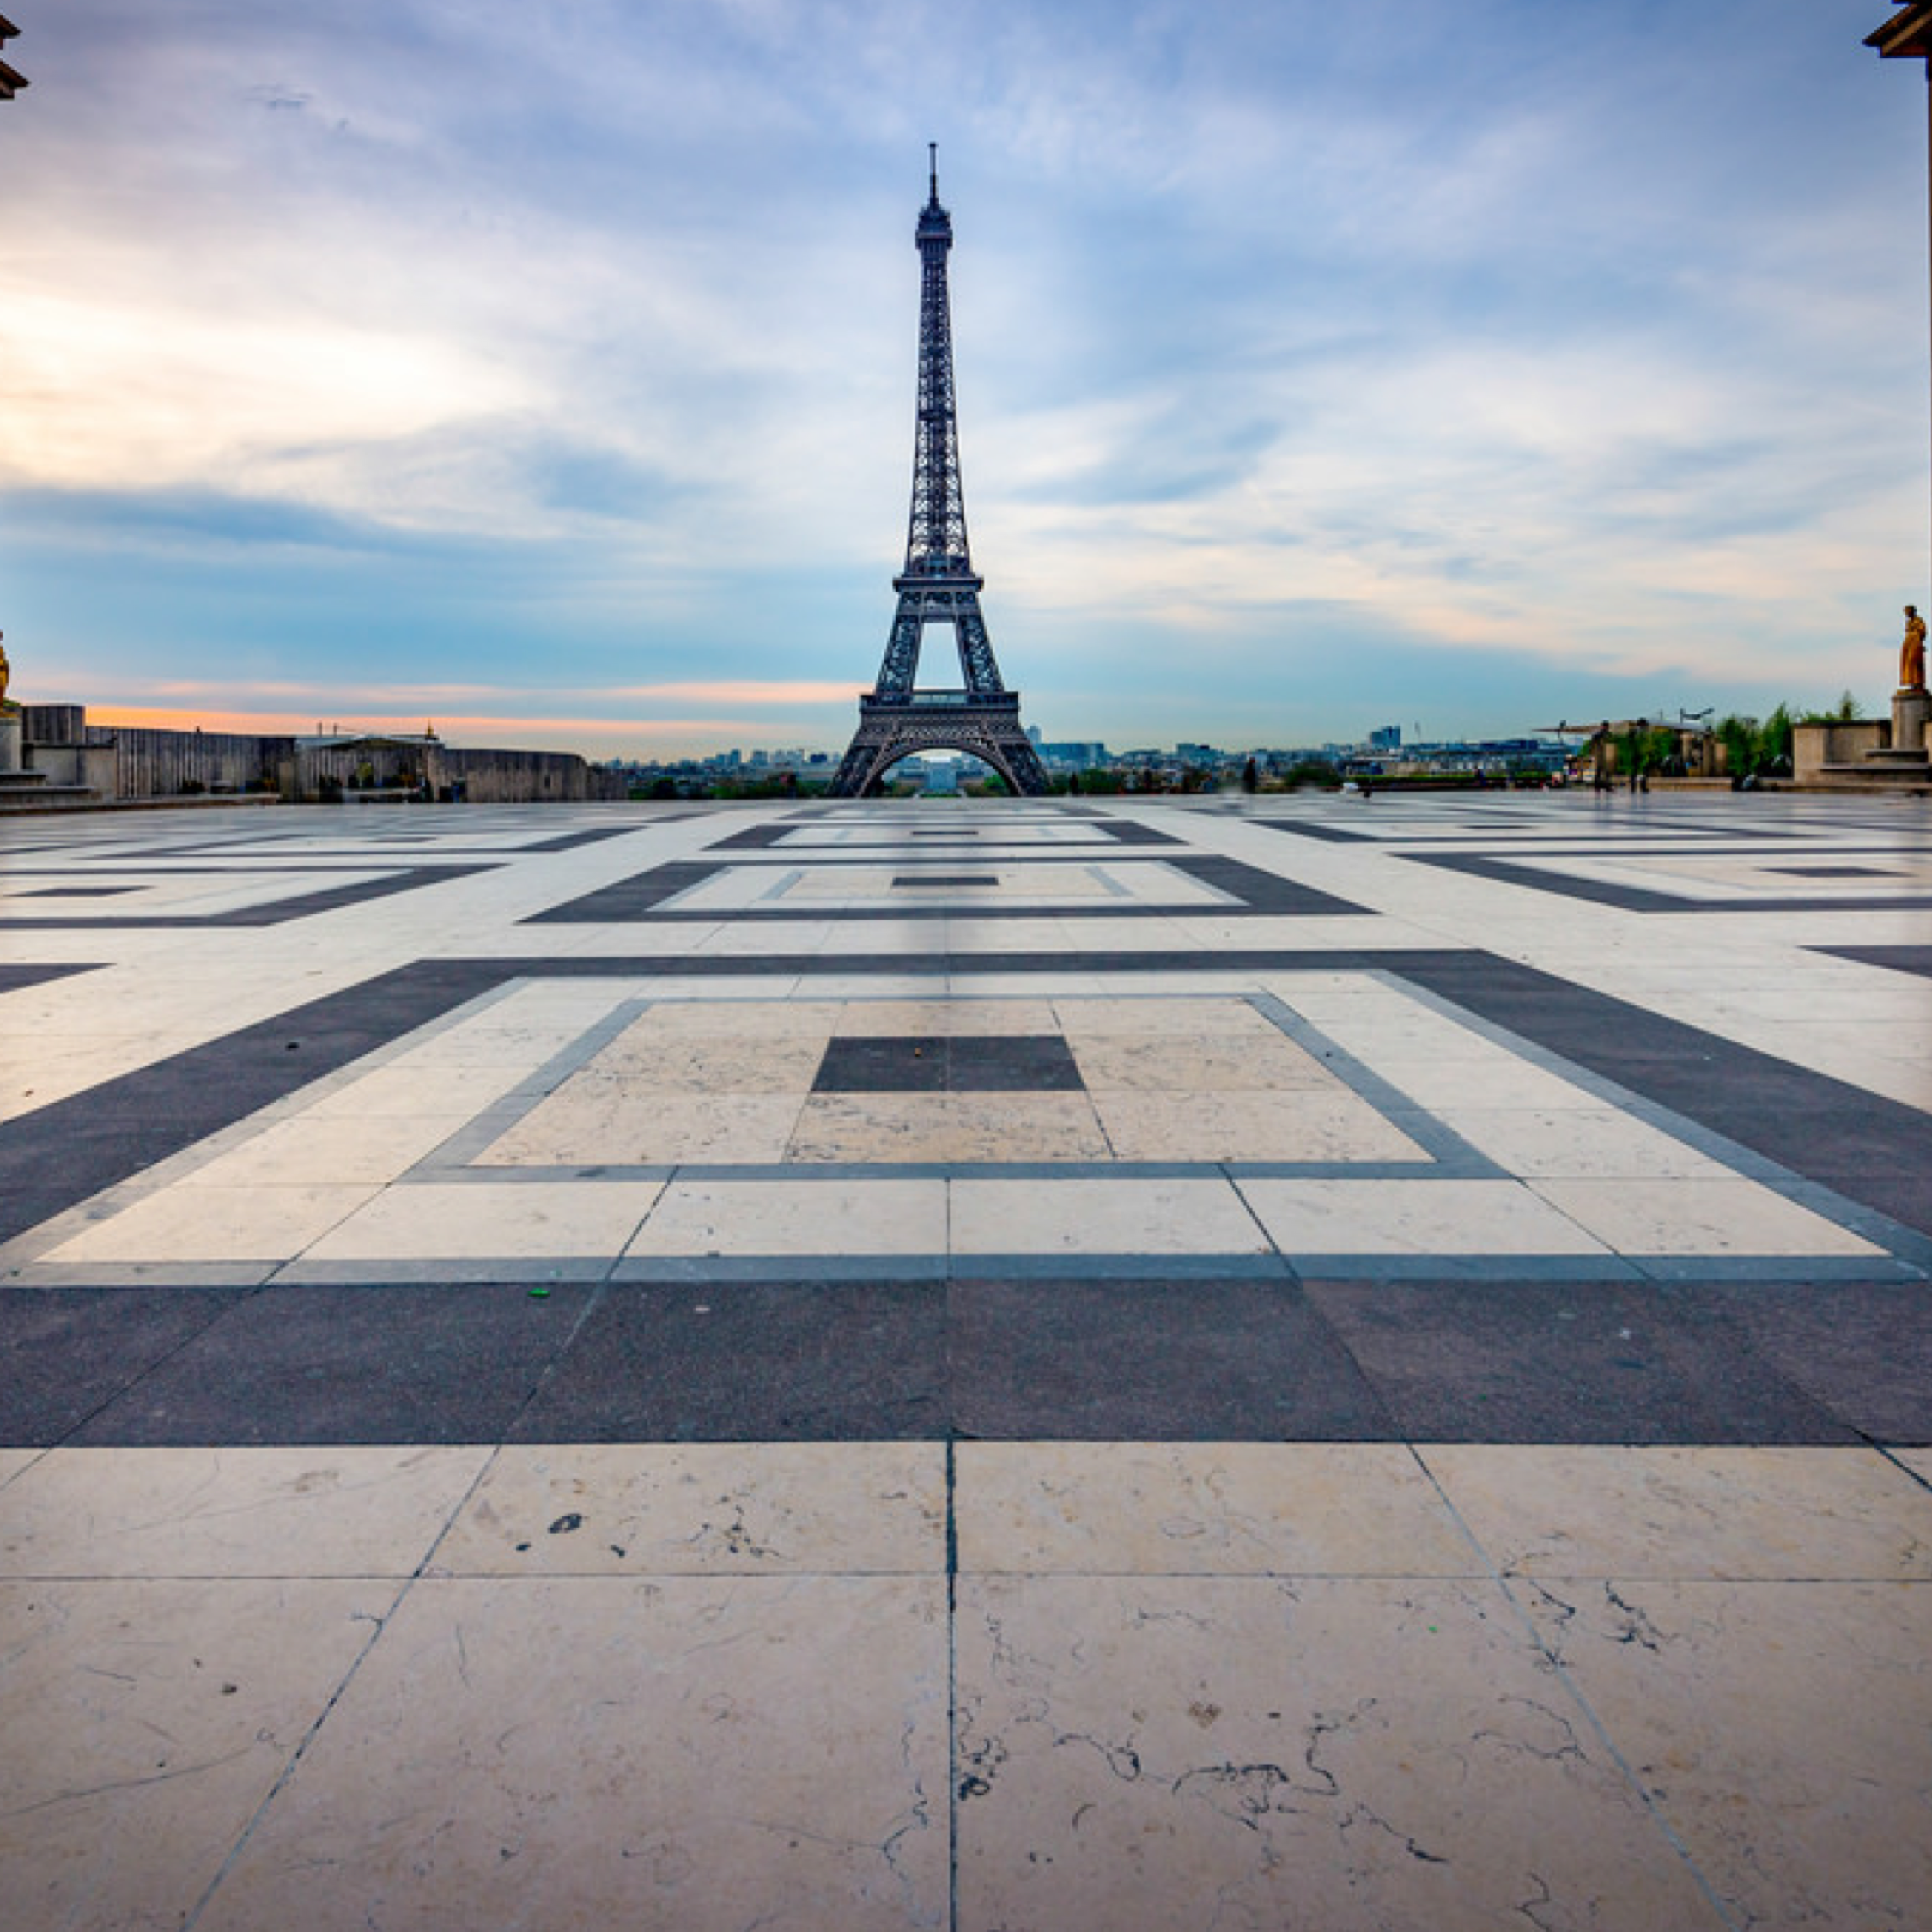 Visit the Eiffel Tower Free Guided Tour